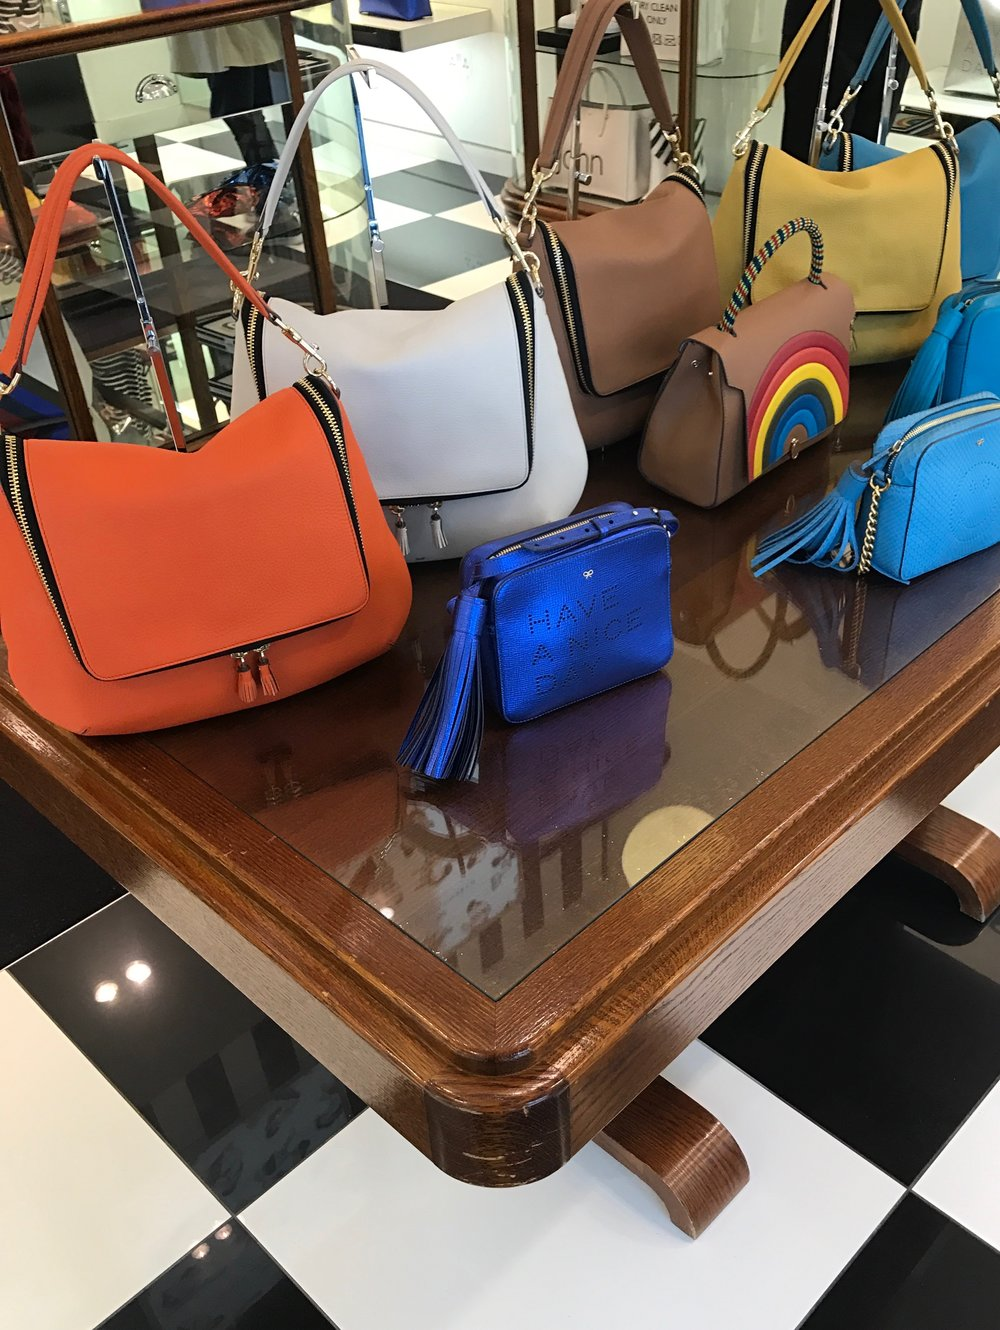 THE GROWN UP EDIT - Anya Hindmarch Bicester Village